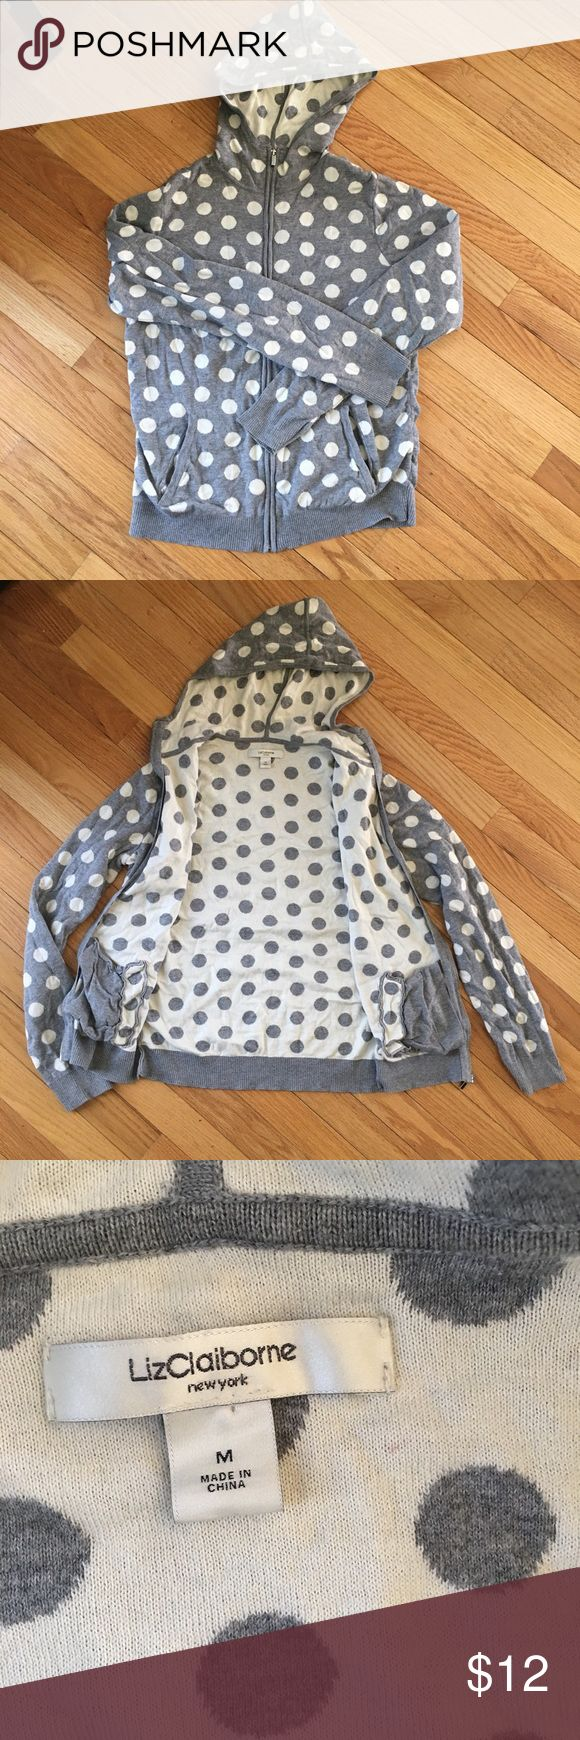 Polka Dot Hoodie Worn once. Polka Dot zip up hoodie by Liz Claiborne. Inside pattern color is opposite of outside. Soft and cozy. Material is similar to cashmere. Thank you for shopping! Liz Claiborne Sweaters